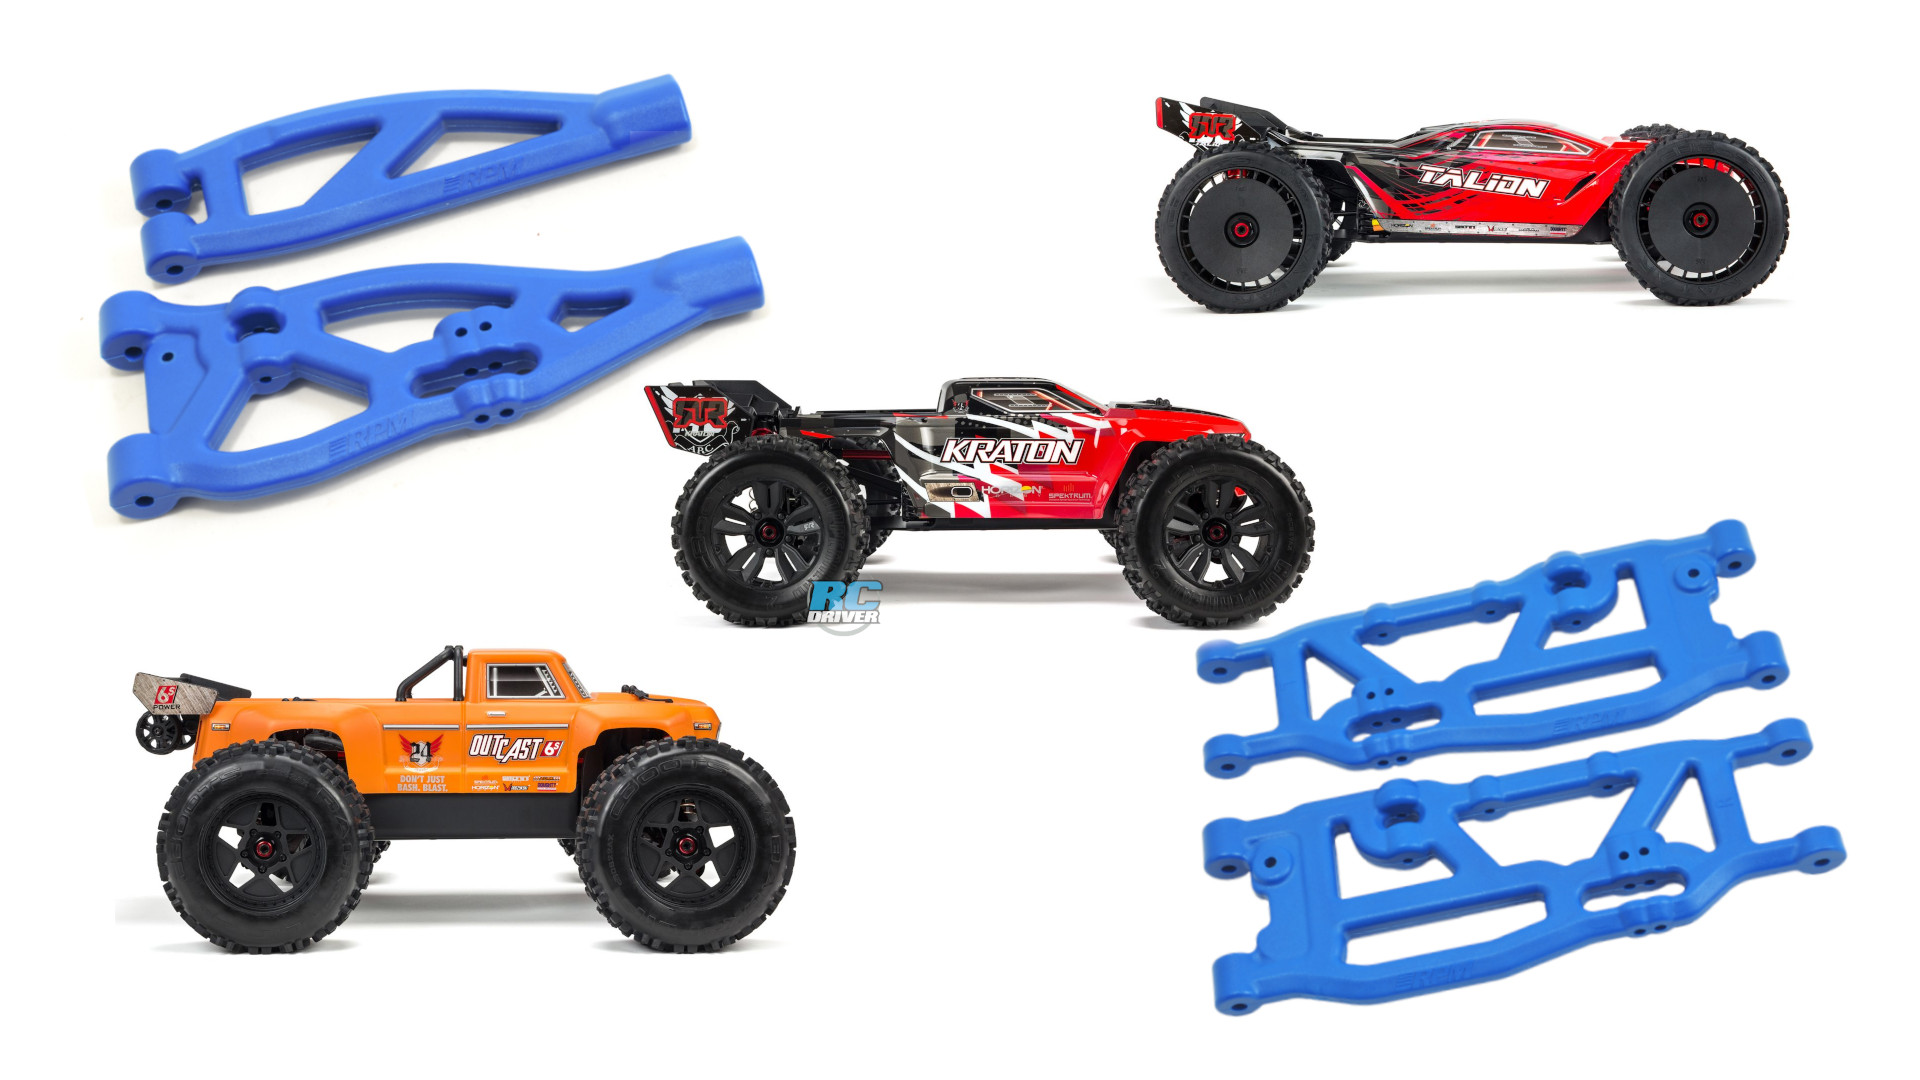 RPM Suspension Arms for Arrma Vehicles